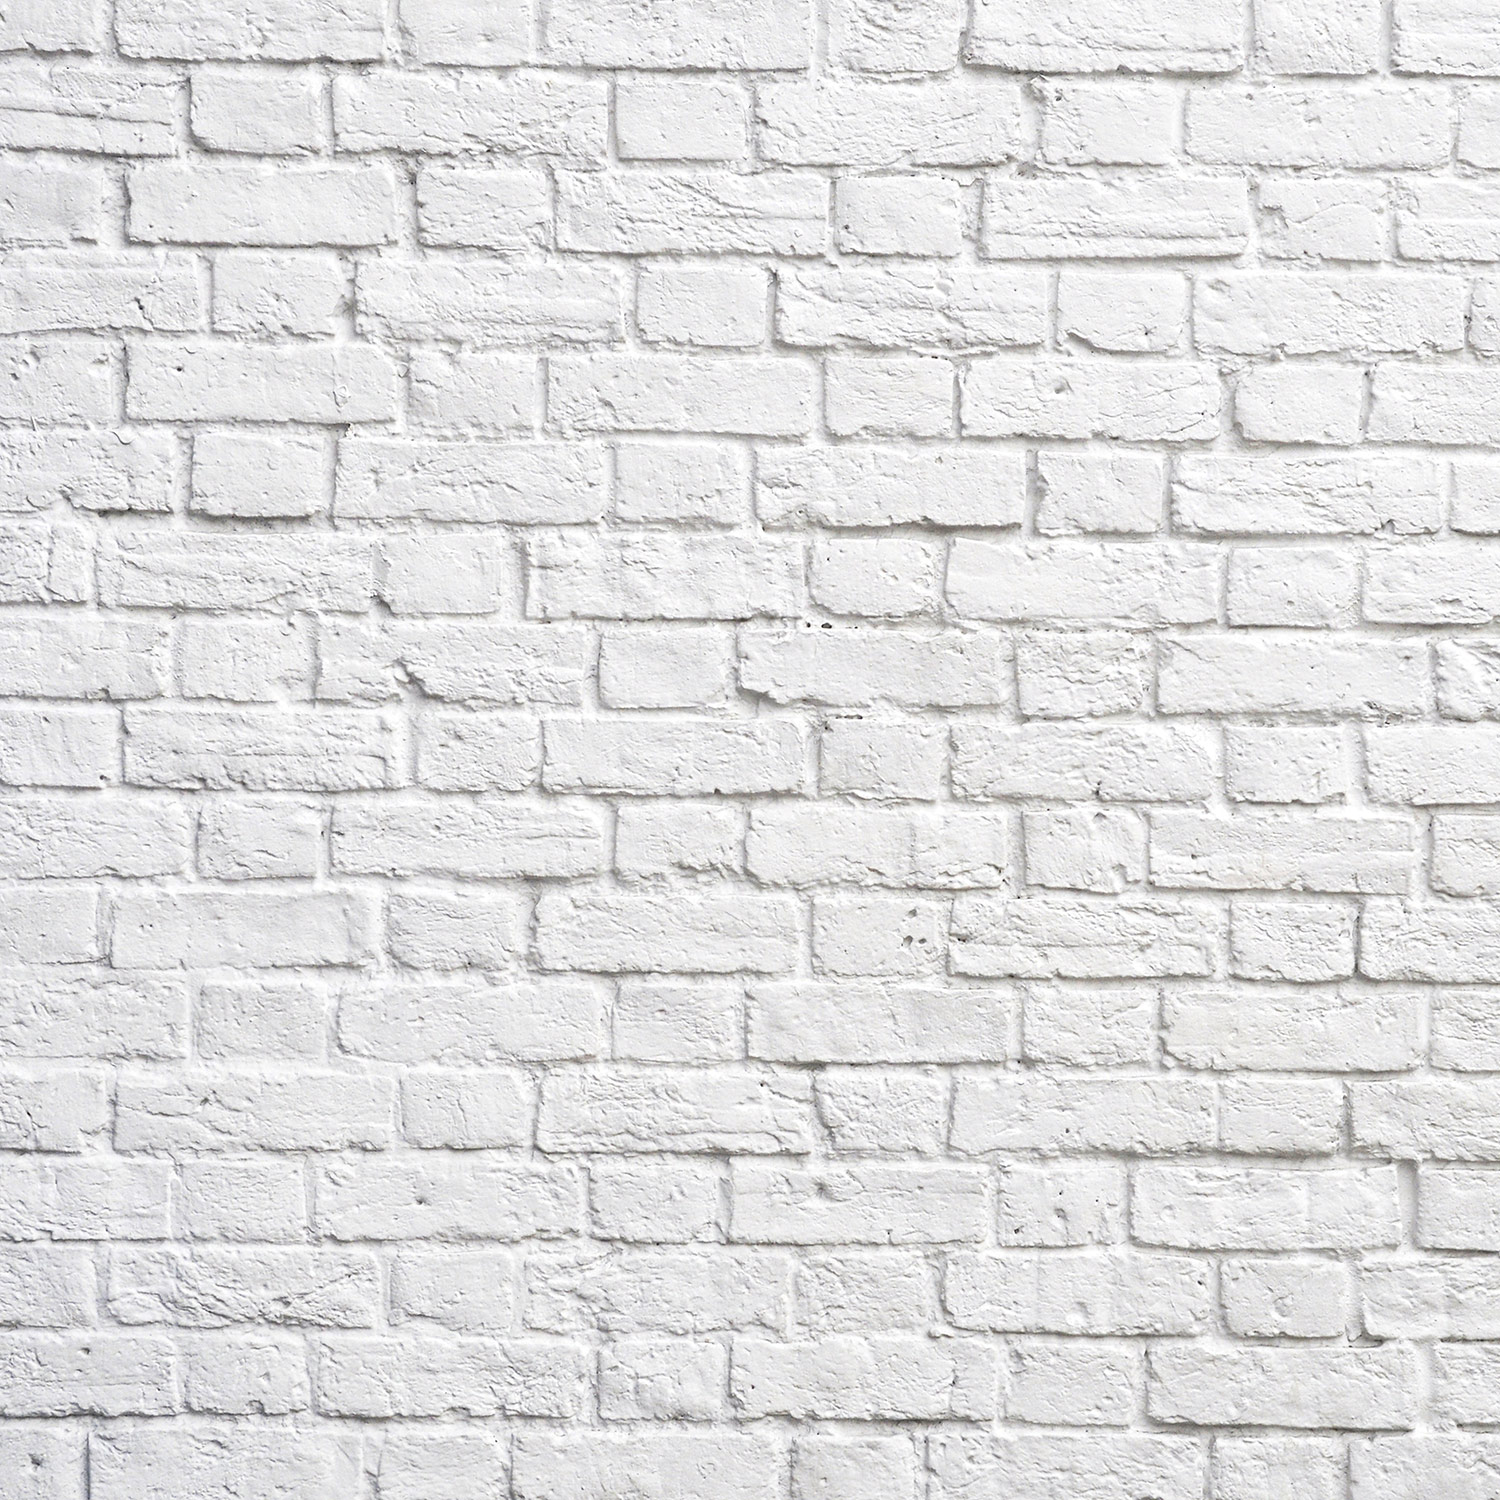 Brick Wall Phone Wallpaper